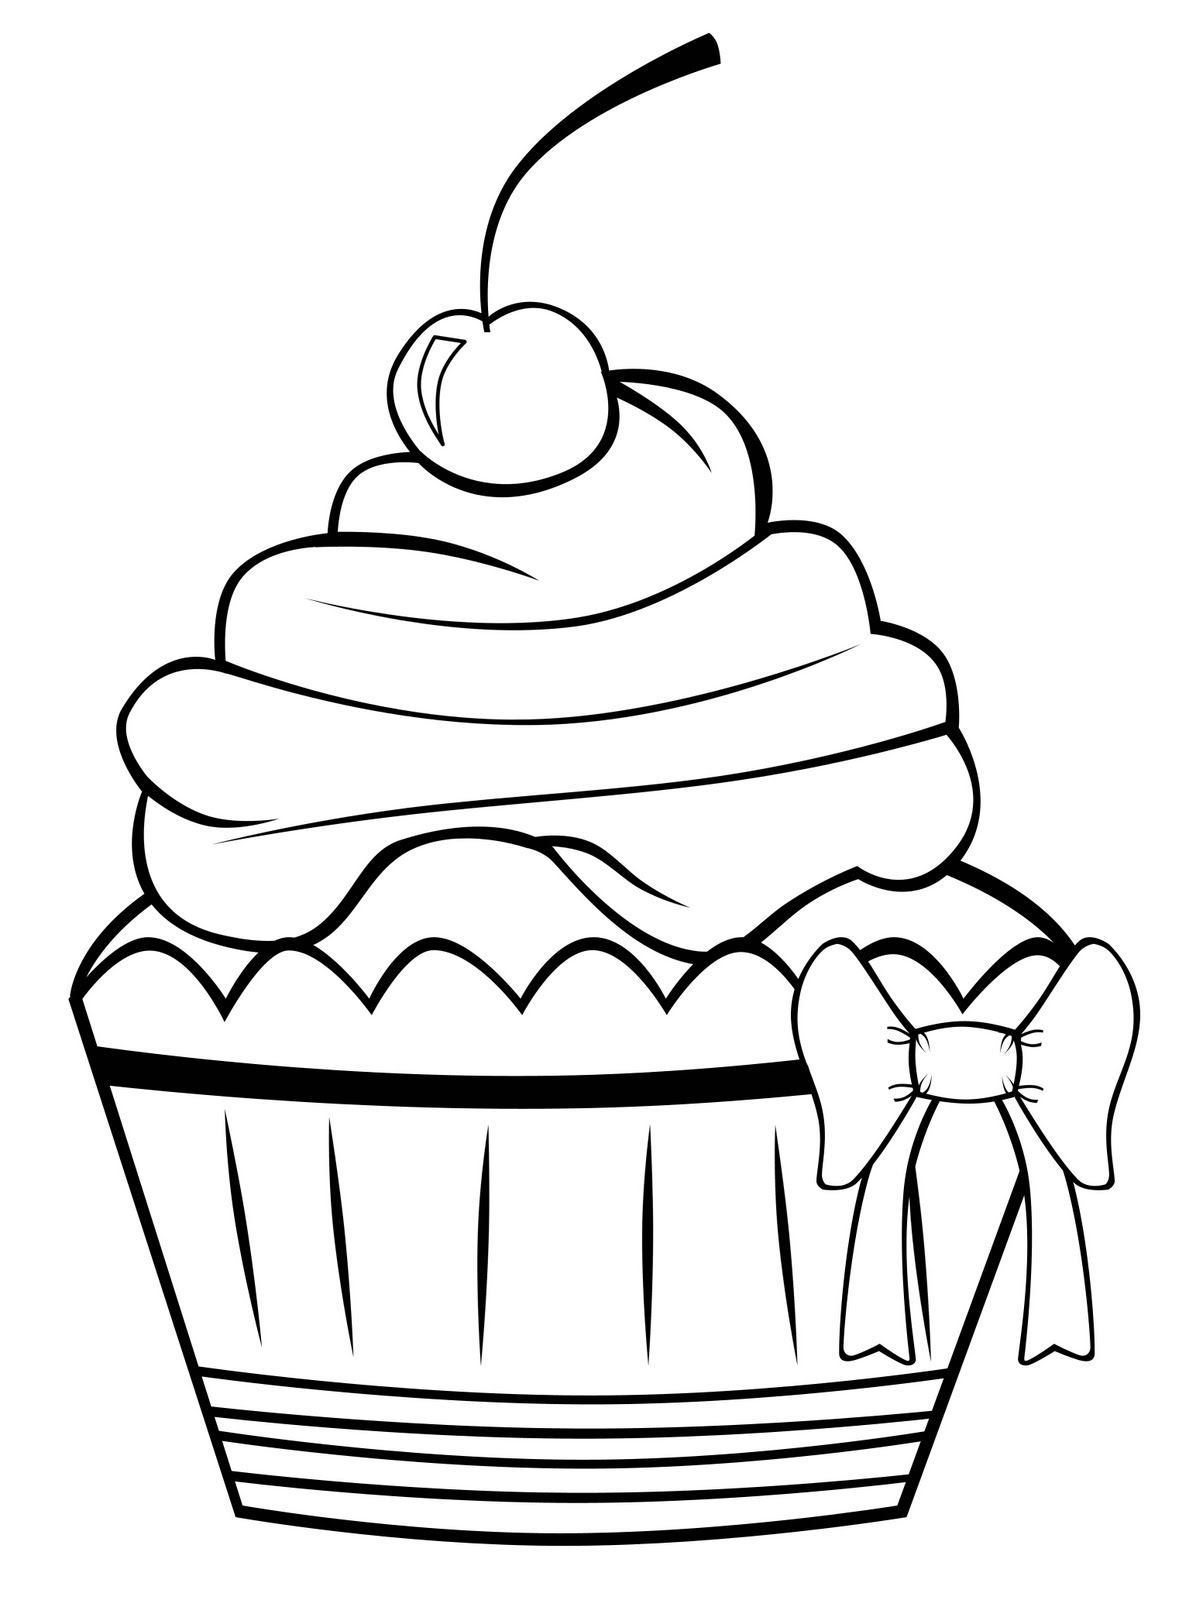 Cupcakes Coloring Pages | cocinas | Pinterest | White cupcakes ...